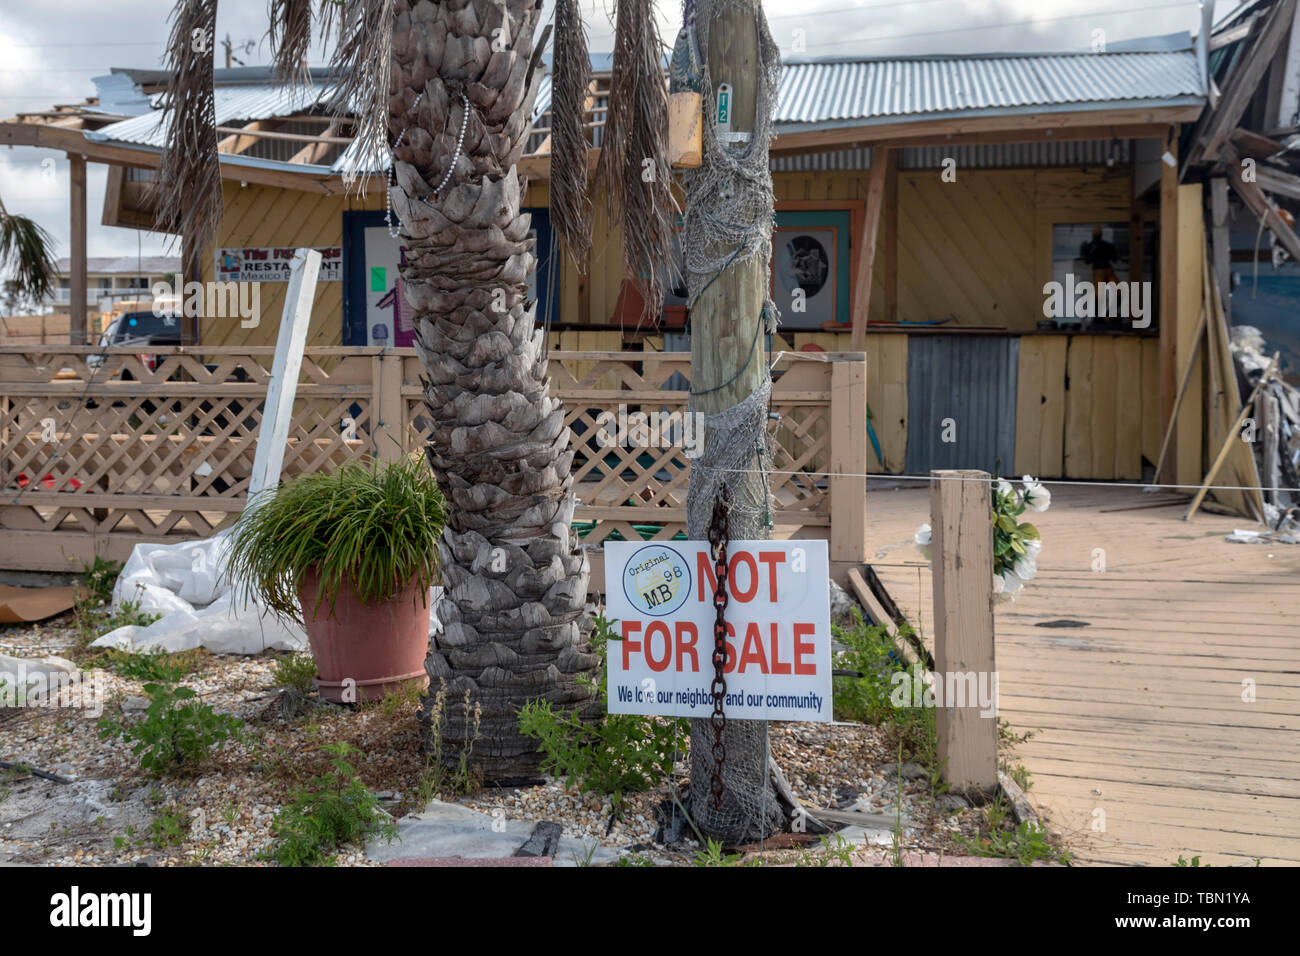 Mexico Beach, Florida - Destruction from Hurricane Michael is widespread seven months after the Category 5 storm hit the Florida Panhandle. Even thoug - Stock Image